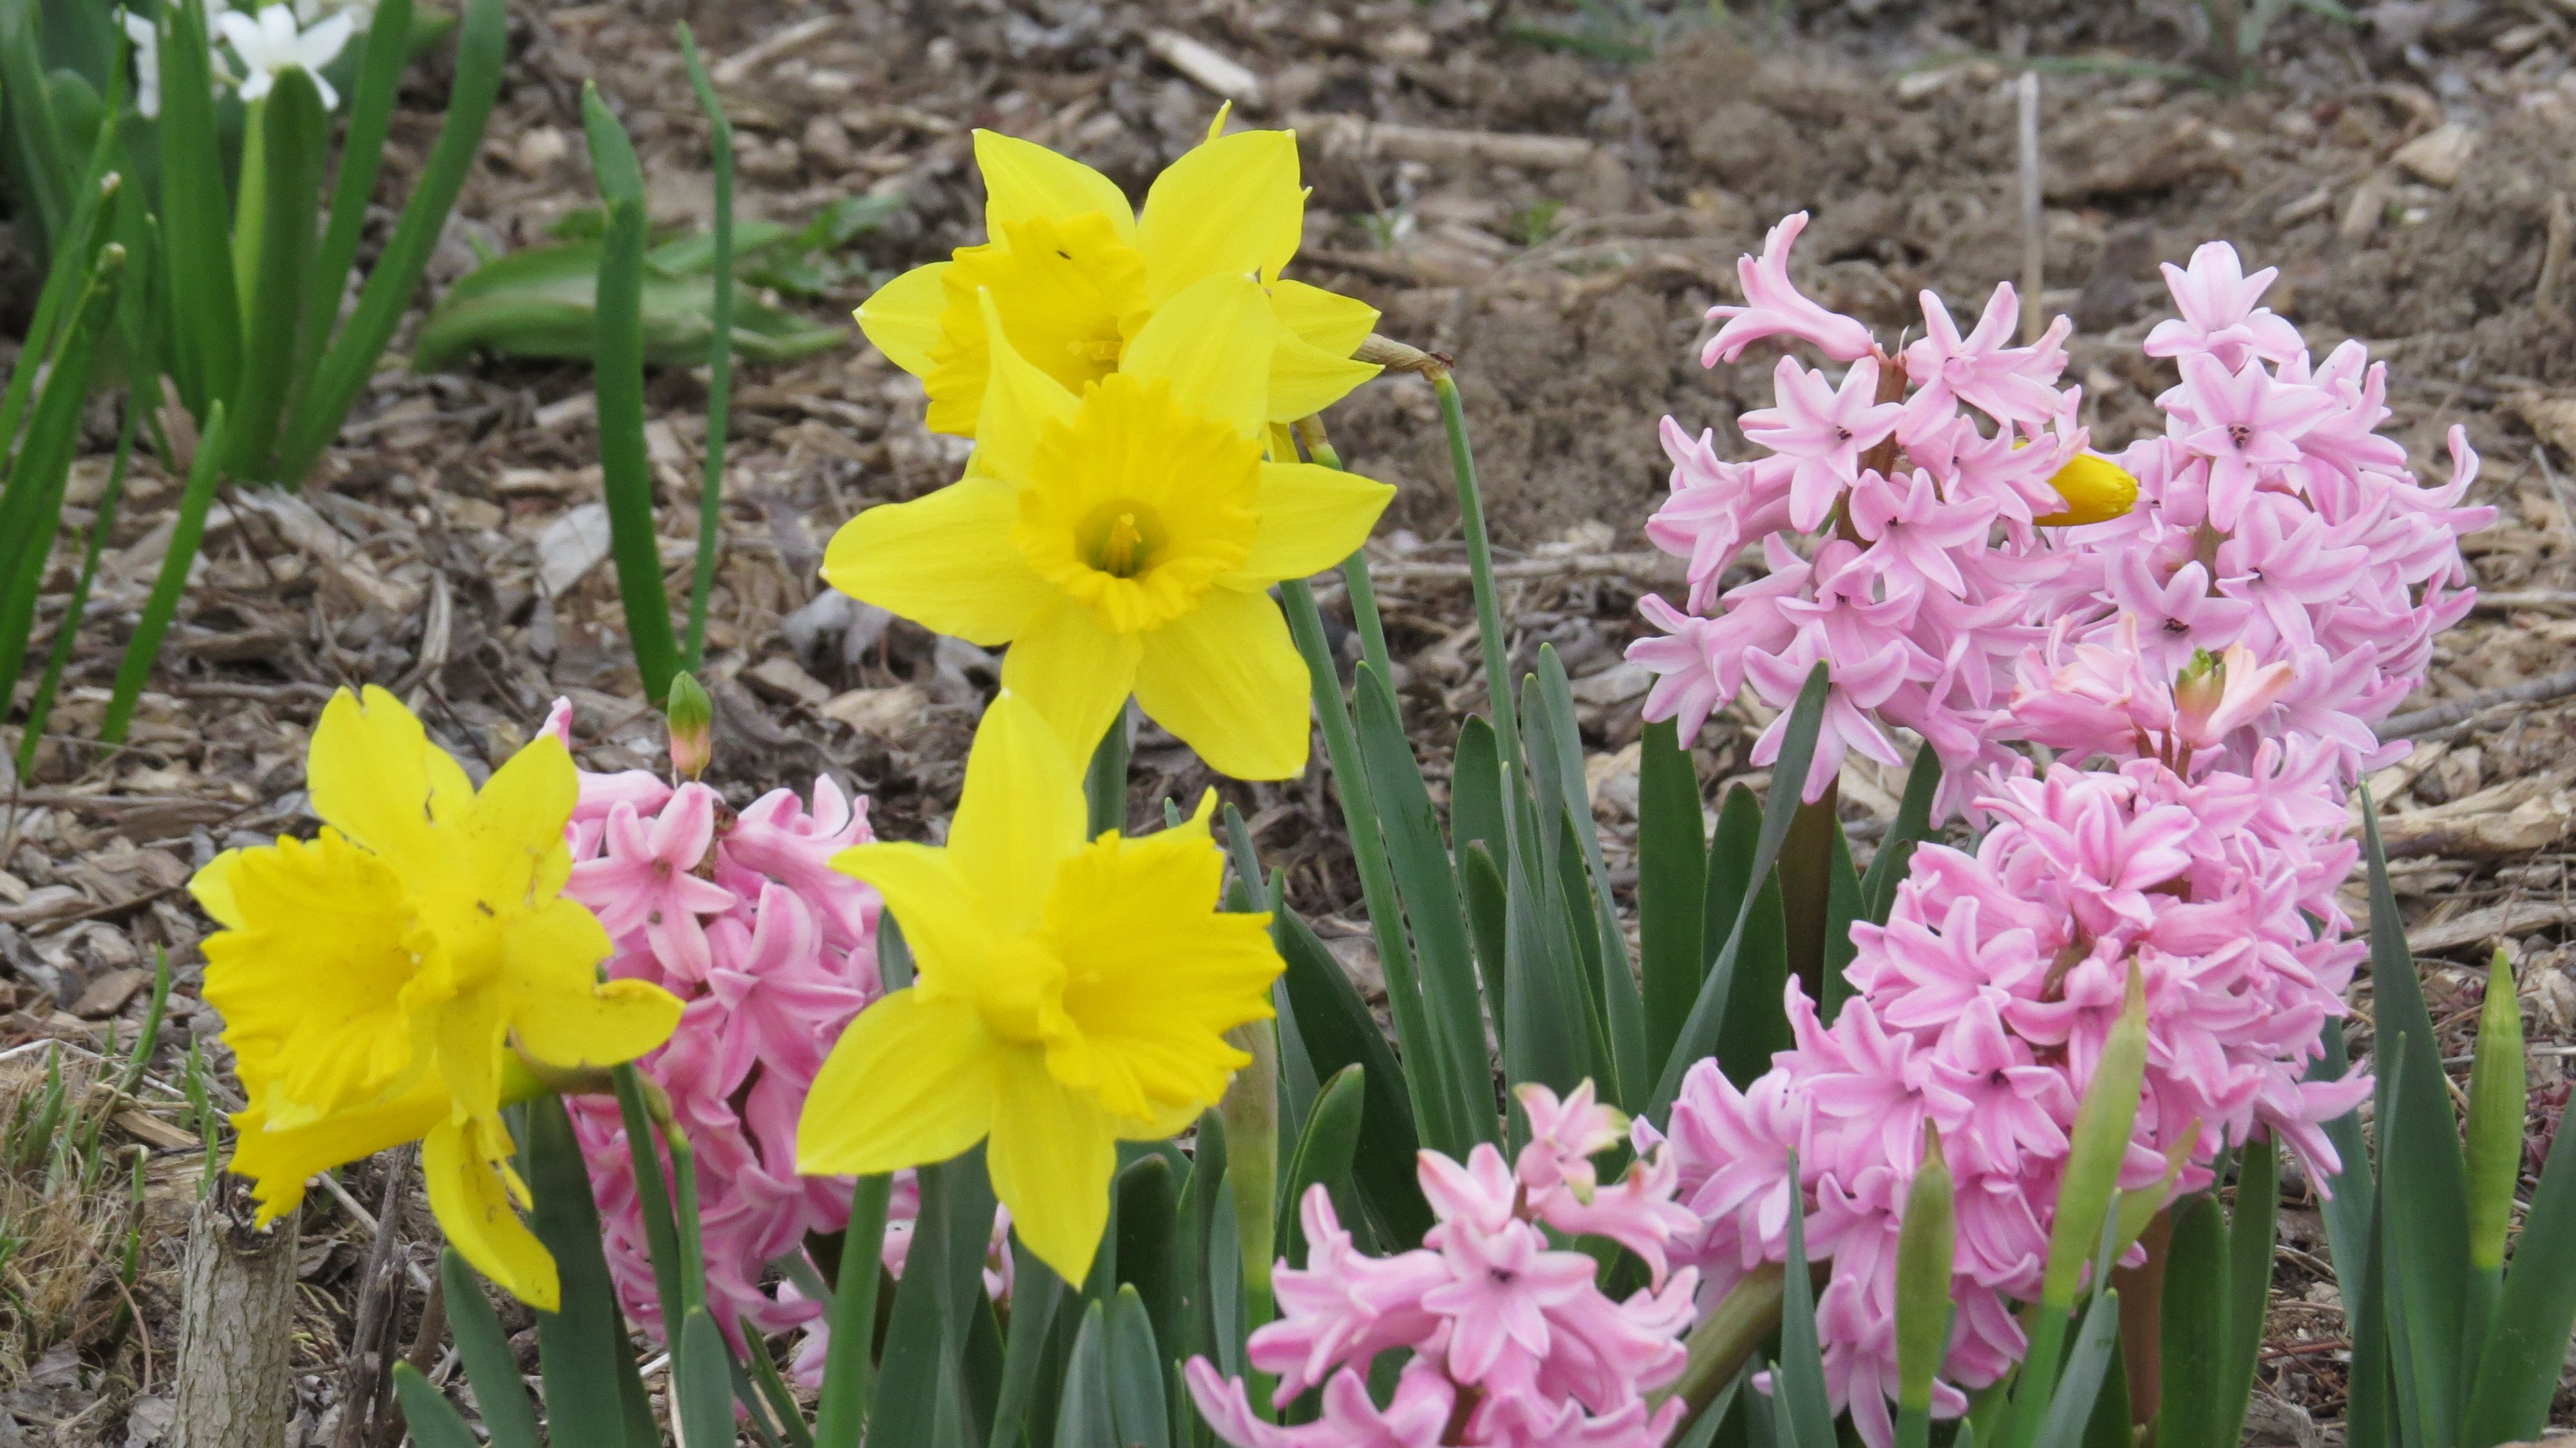 Yellow daffs and pink hyacinths  Snapped by: Lou-Lou Lange